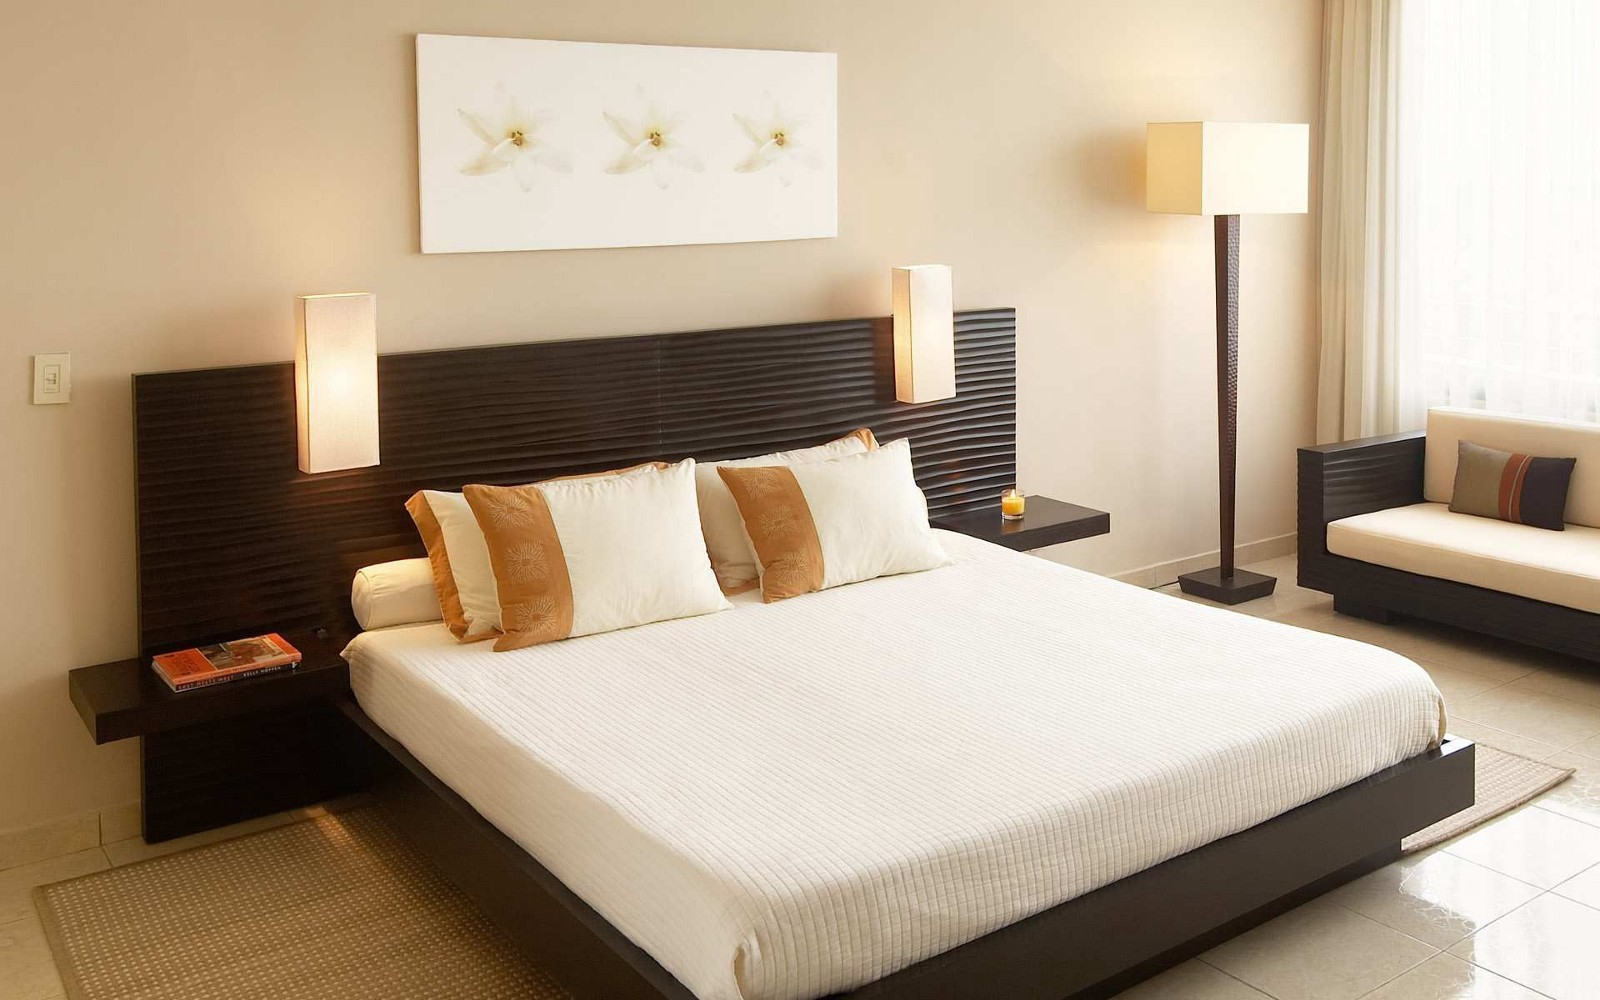 Stylish Home Bed Design Ideas With Pictures Latest Designs